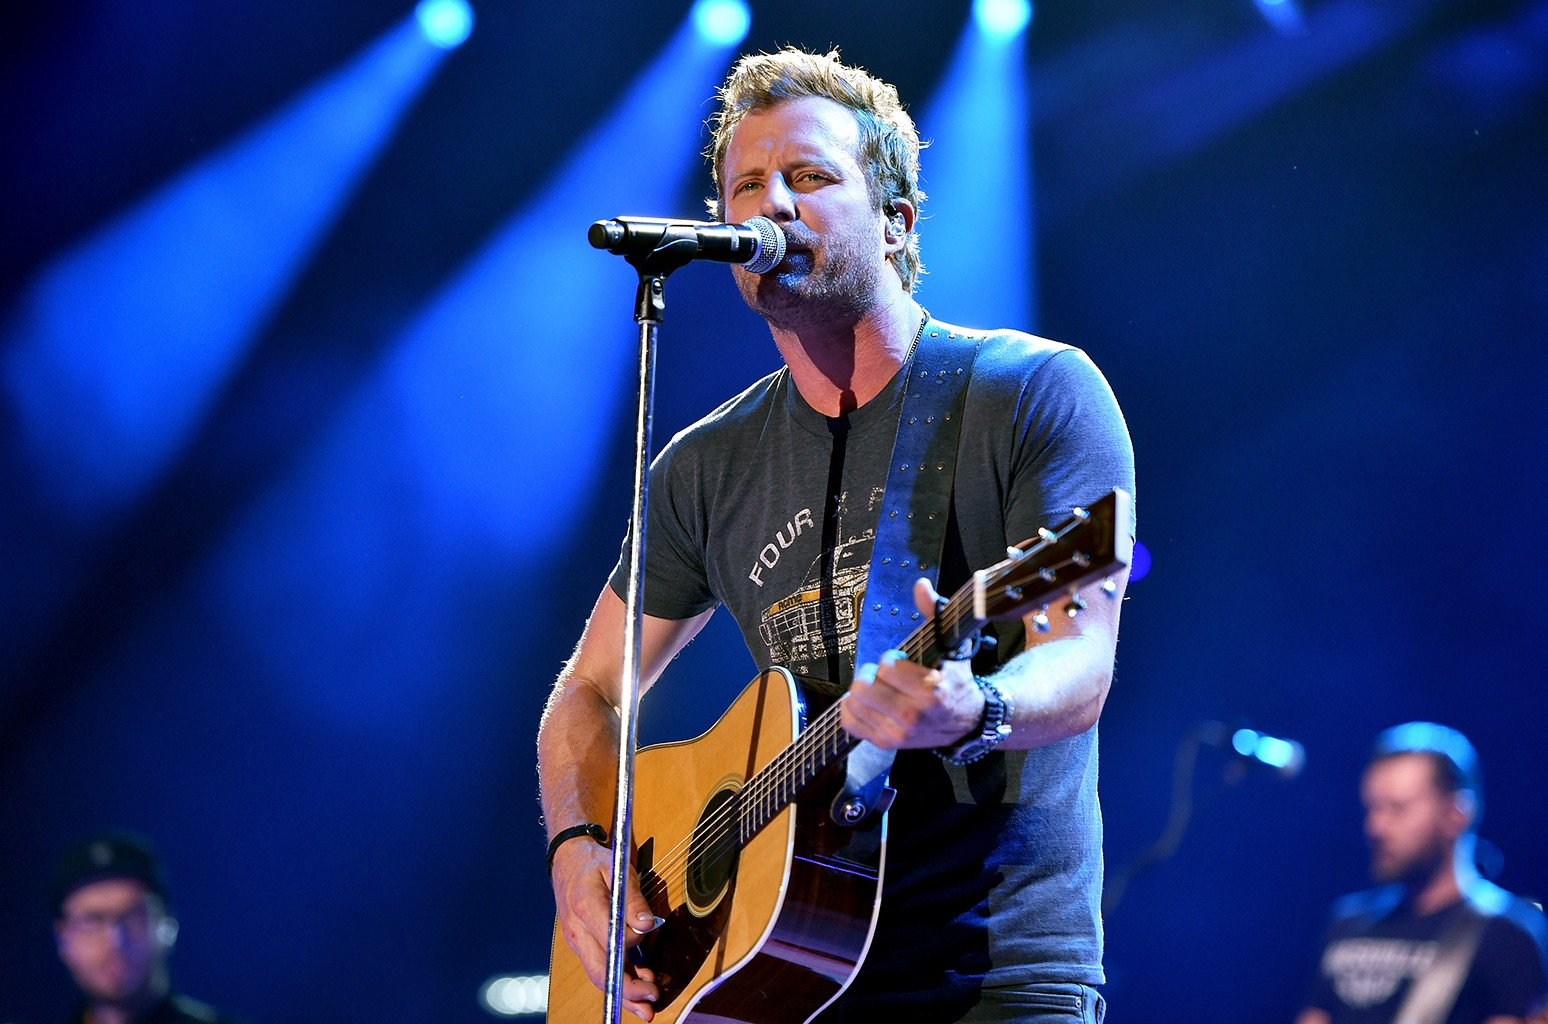 Dierks Bentley On His Behind Black Video Diary Billboard Billboard